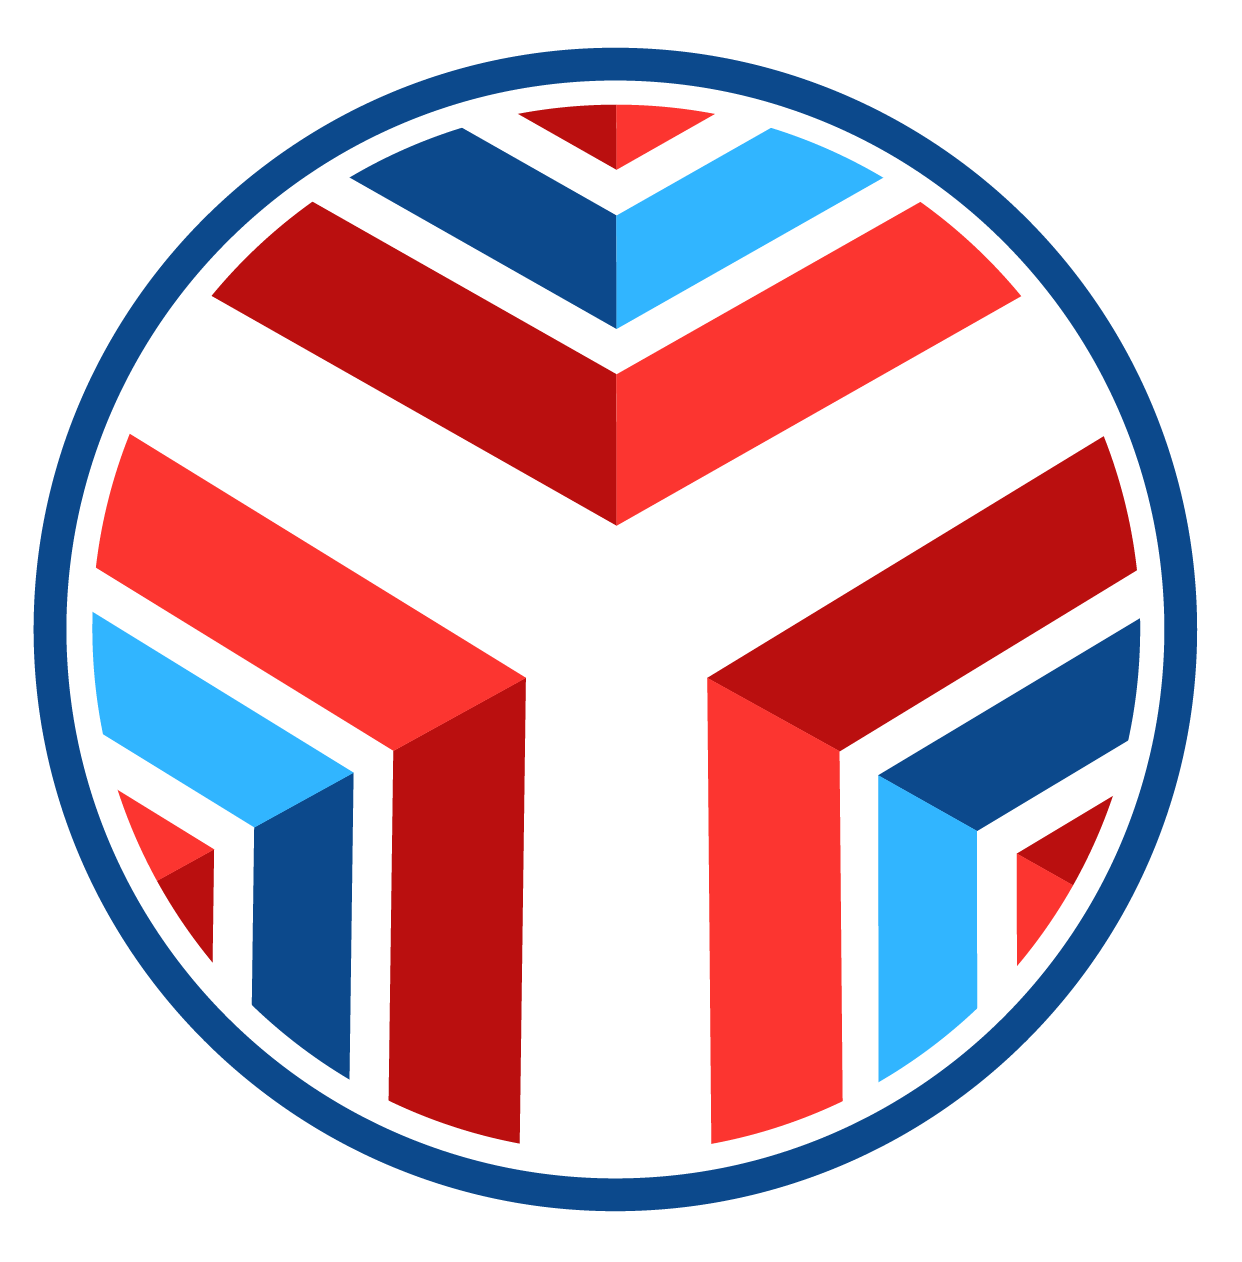 CITY CLub logo: Medaillion with blue, red, and white chevrons.